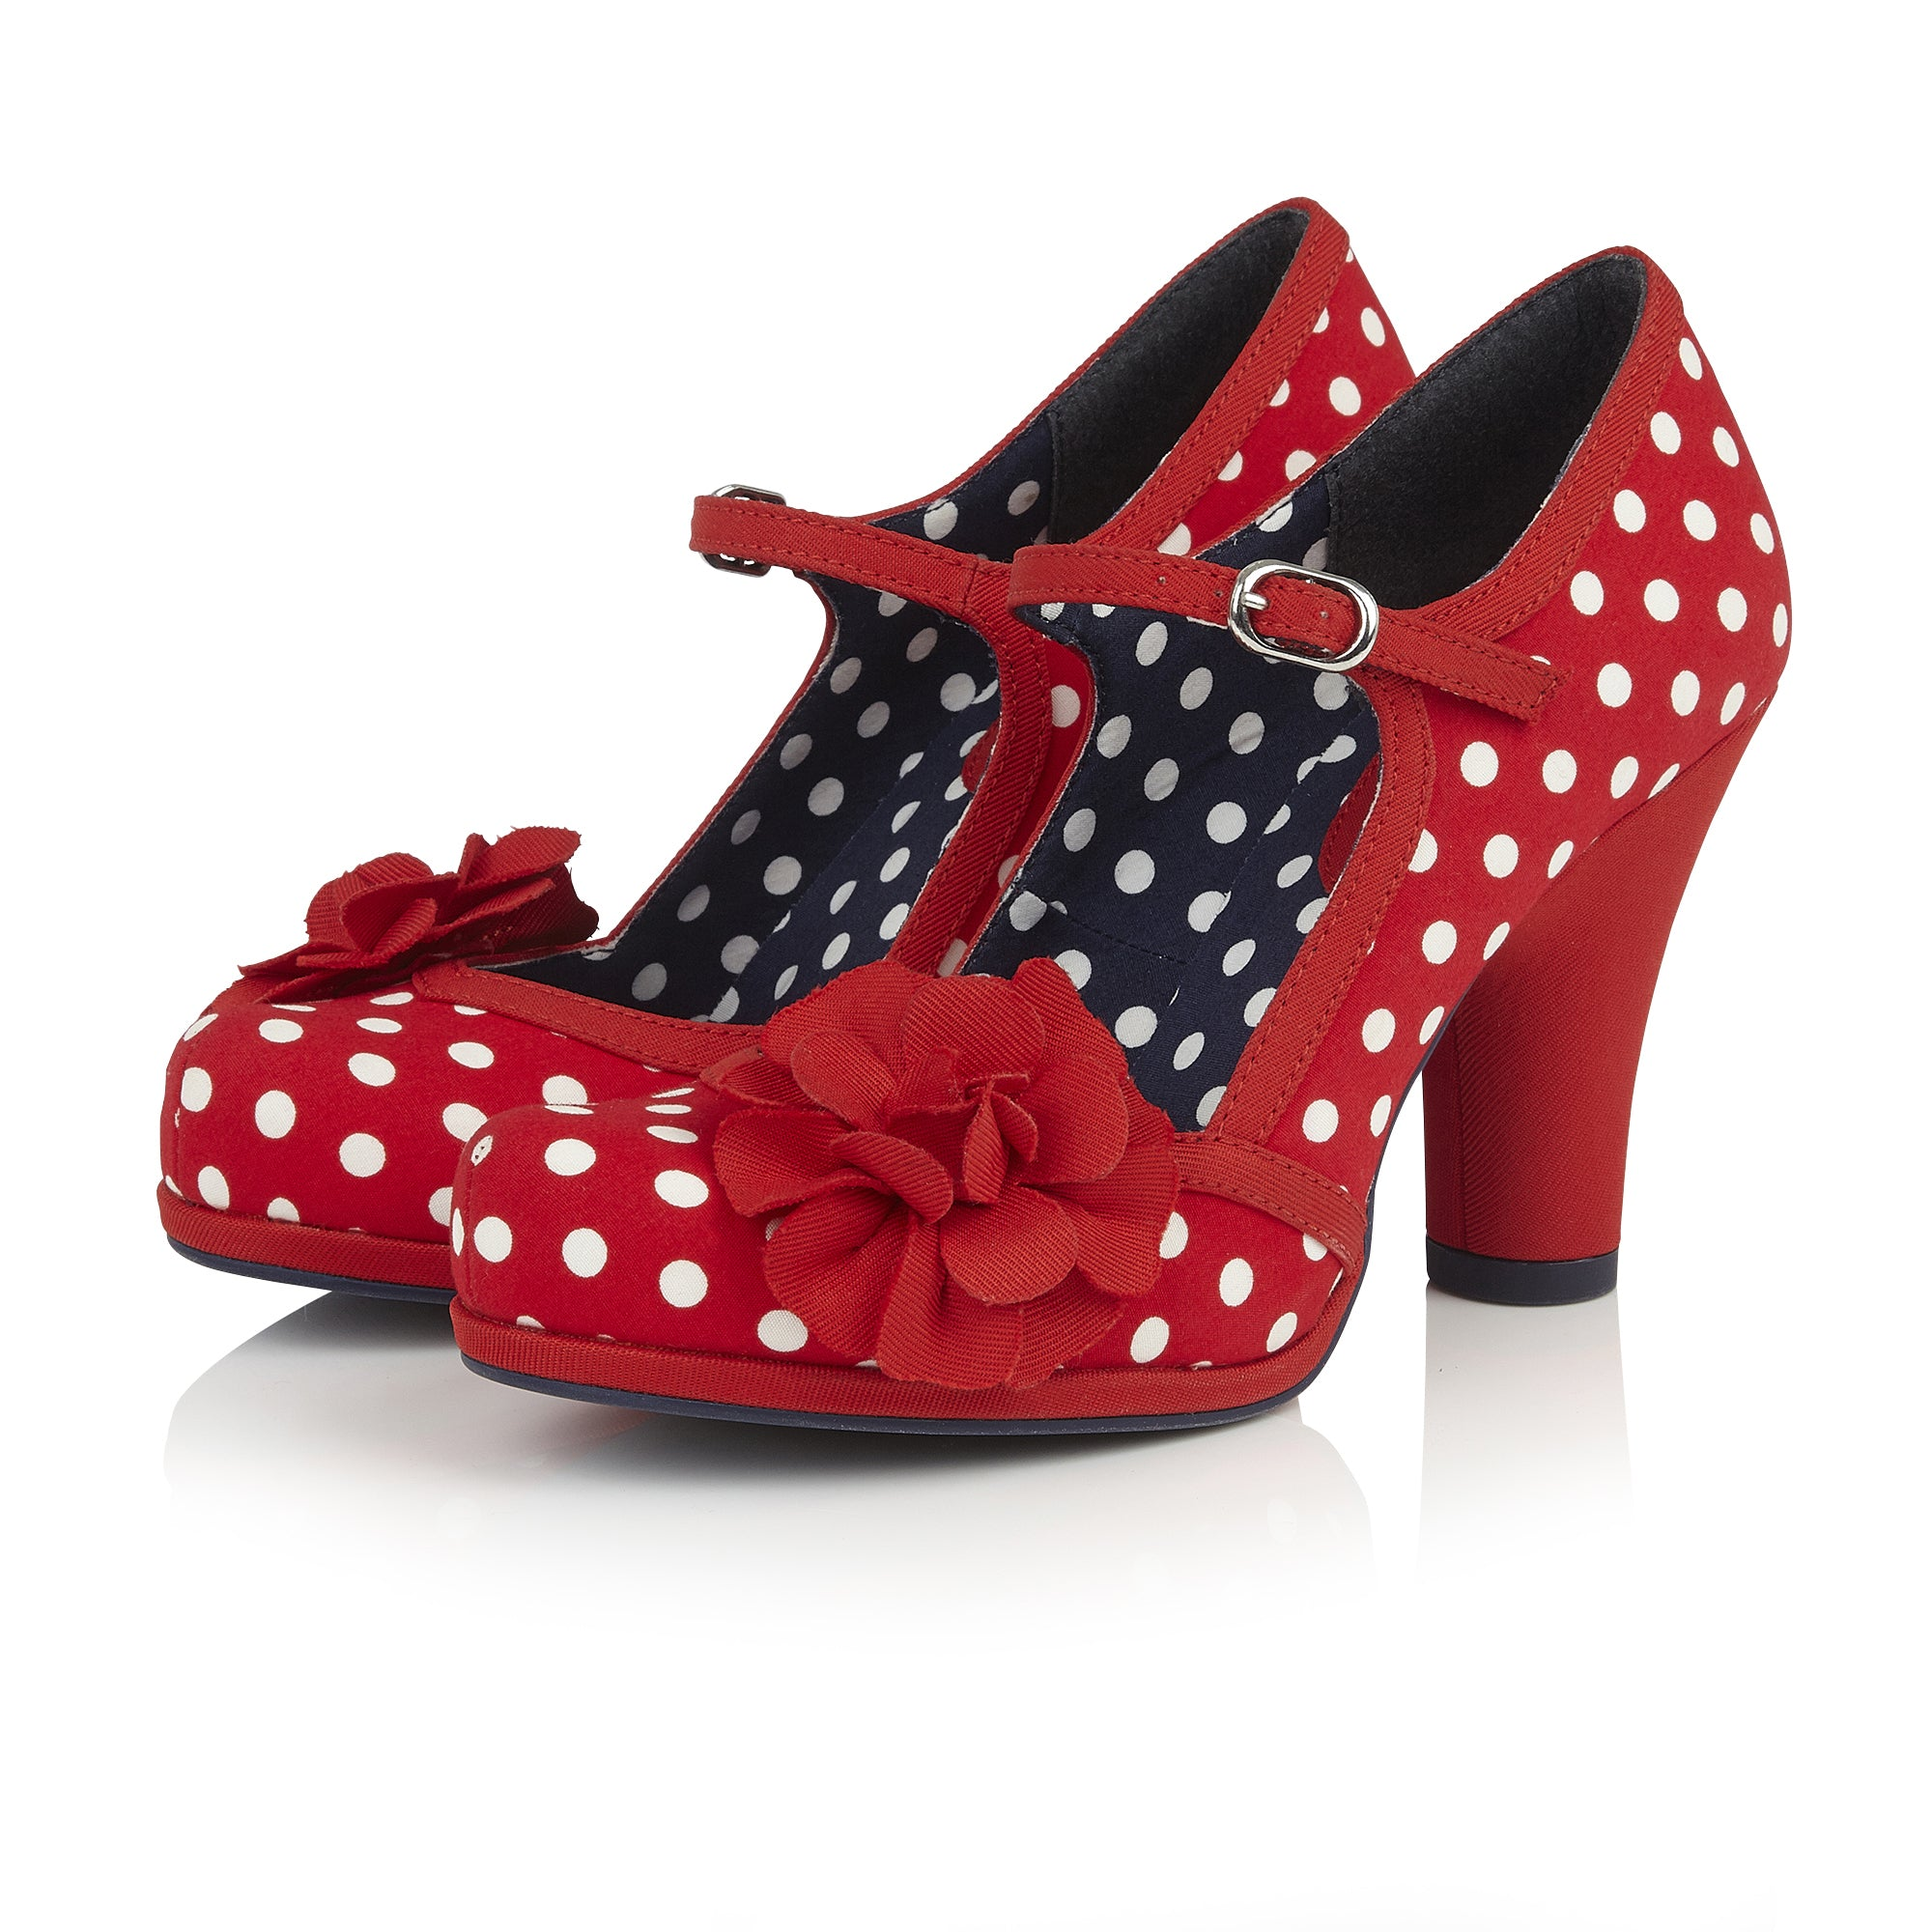 d71f8142f2 Ruby Shoo Hannah Red And White Polka Dot Corsage Court Shoes ...